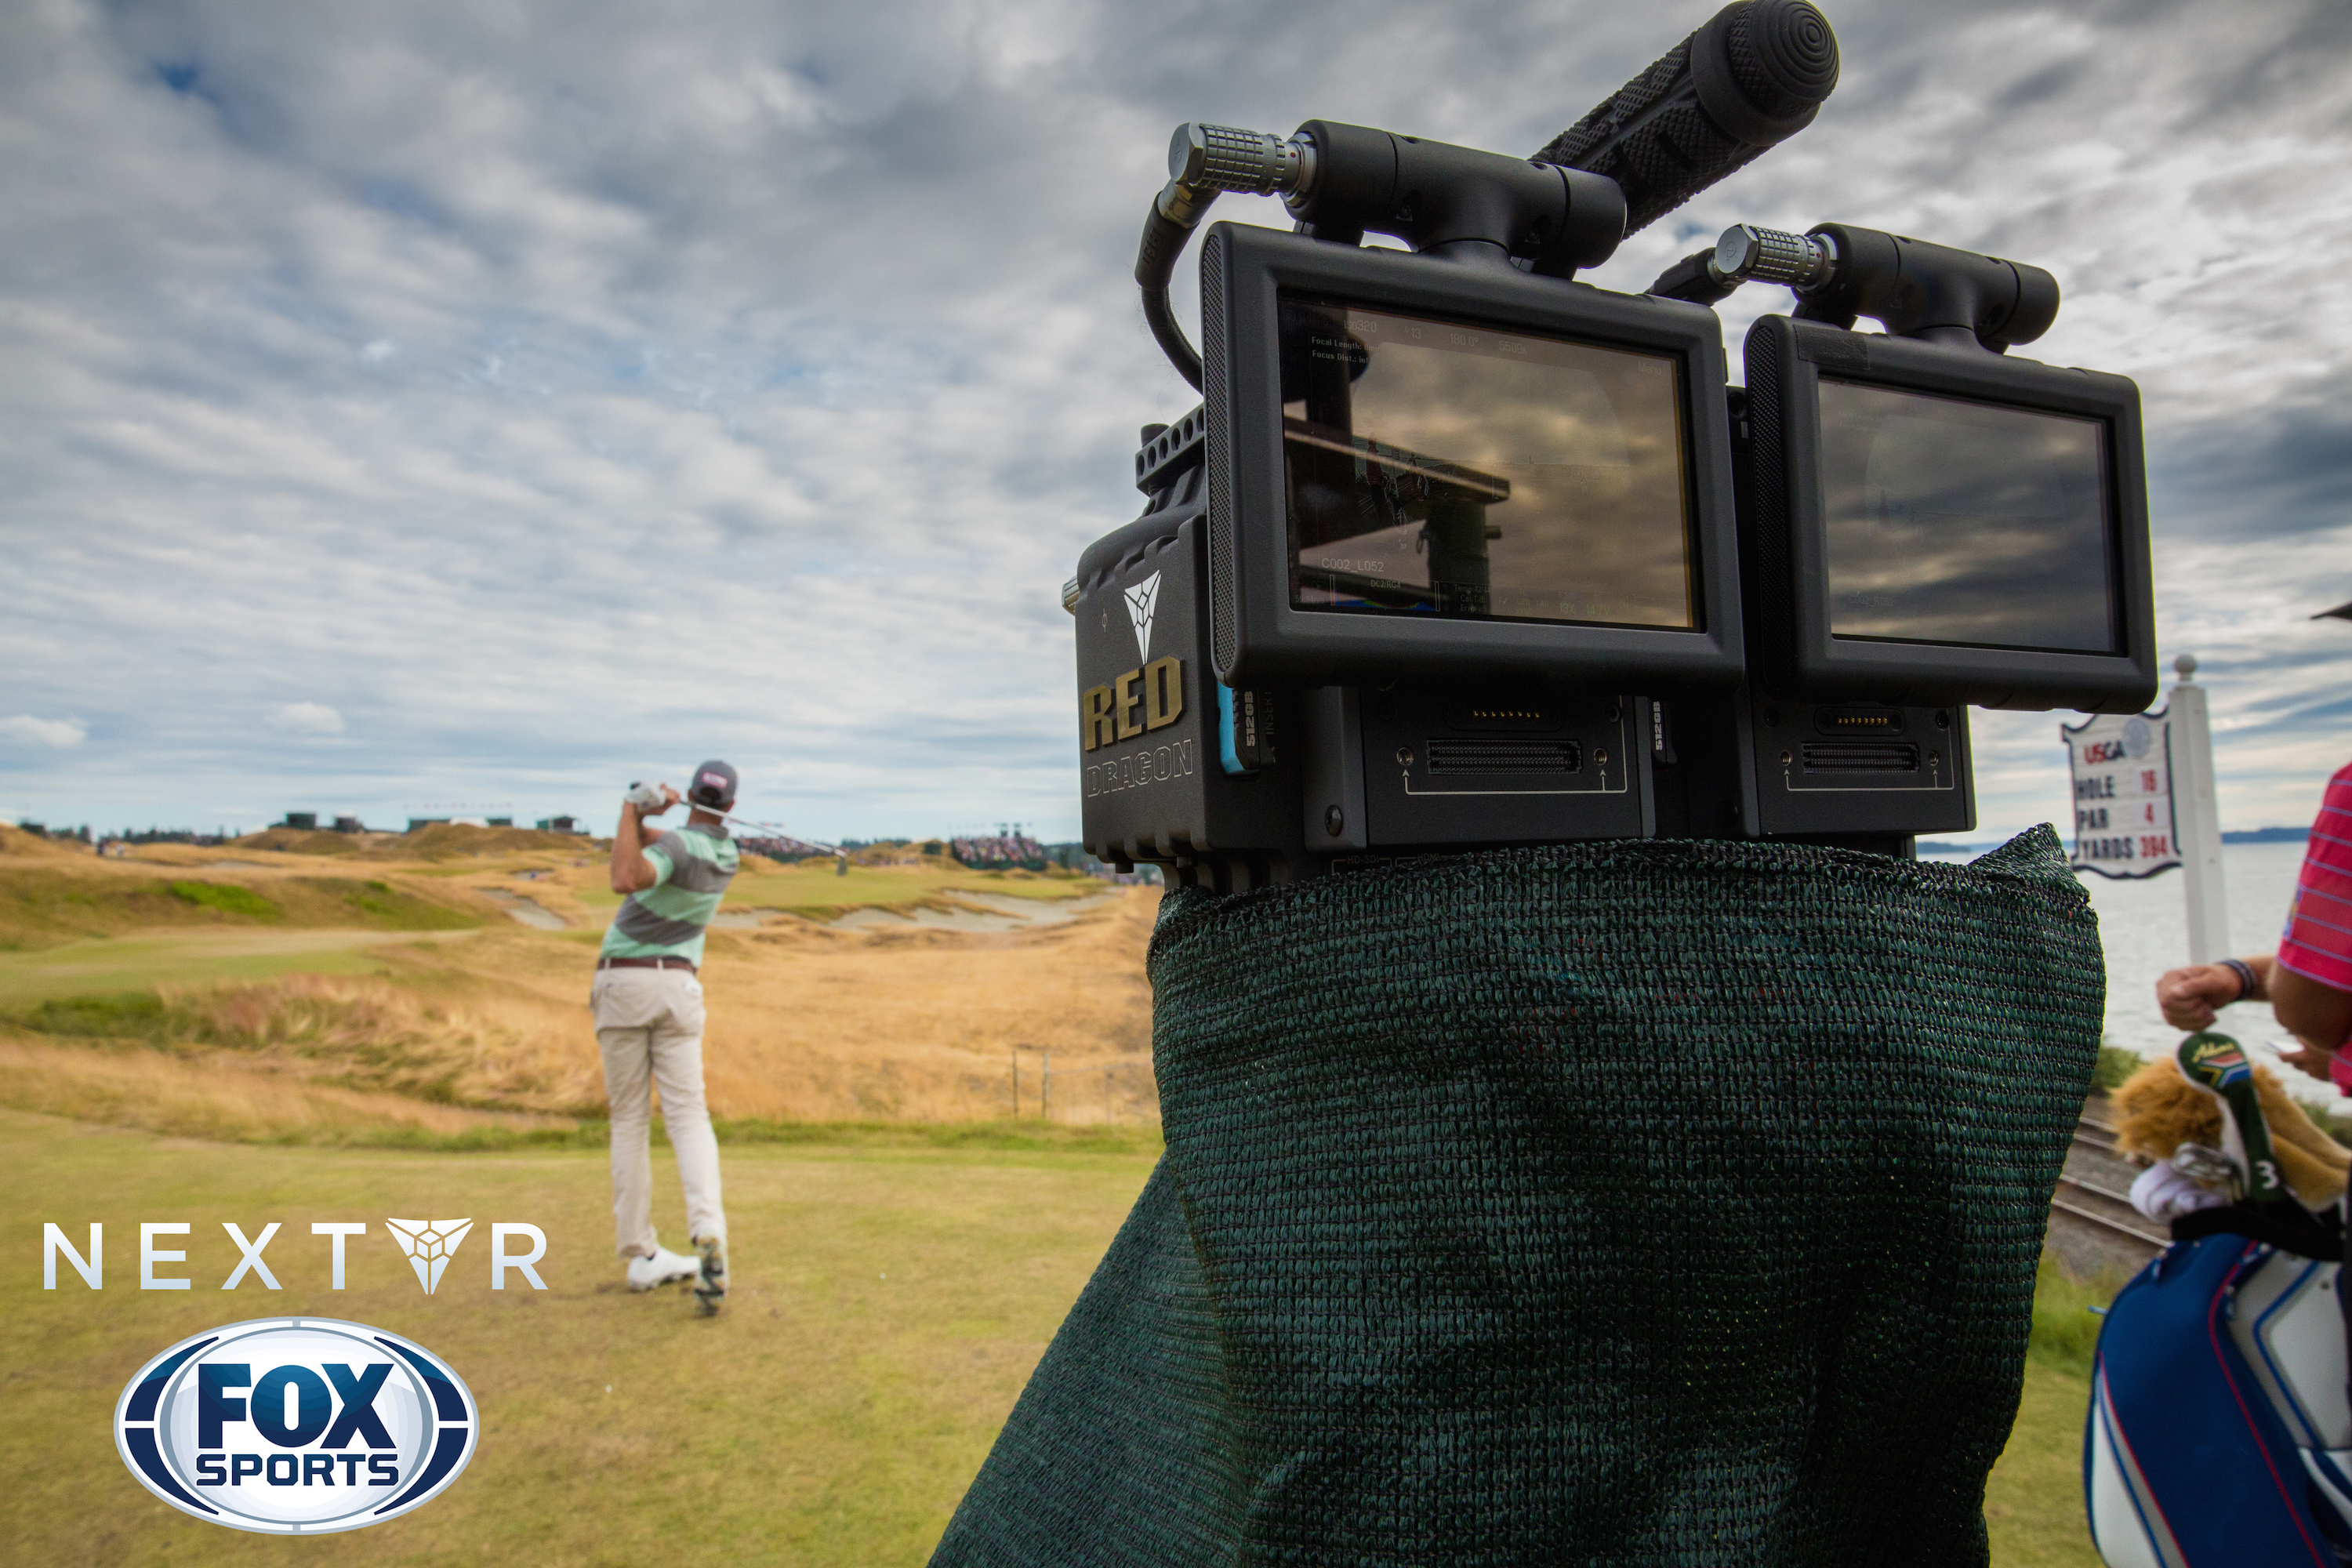 I watched live golf with a virtual reality headset and it was amazing